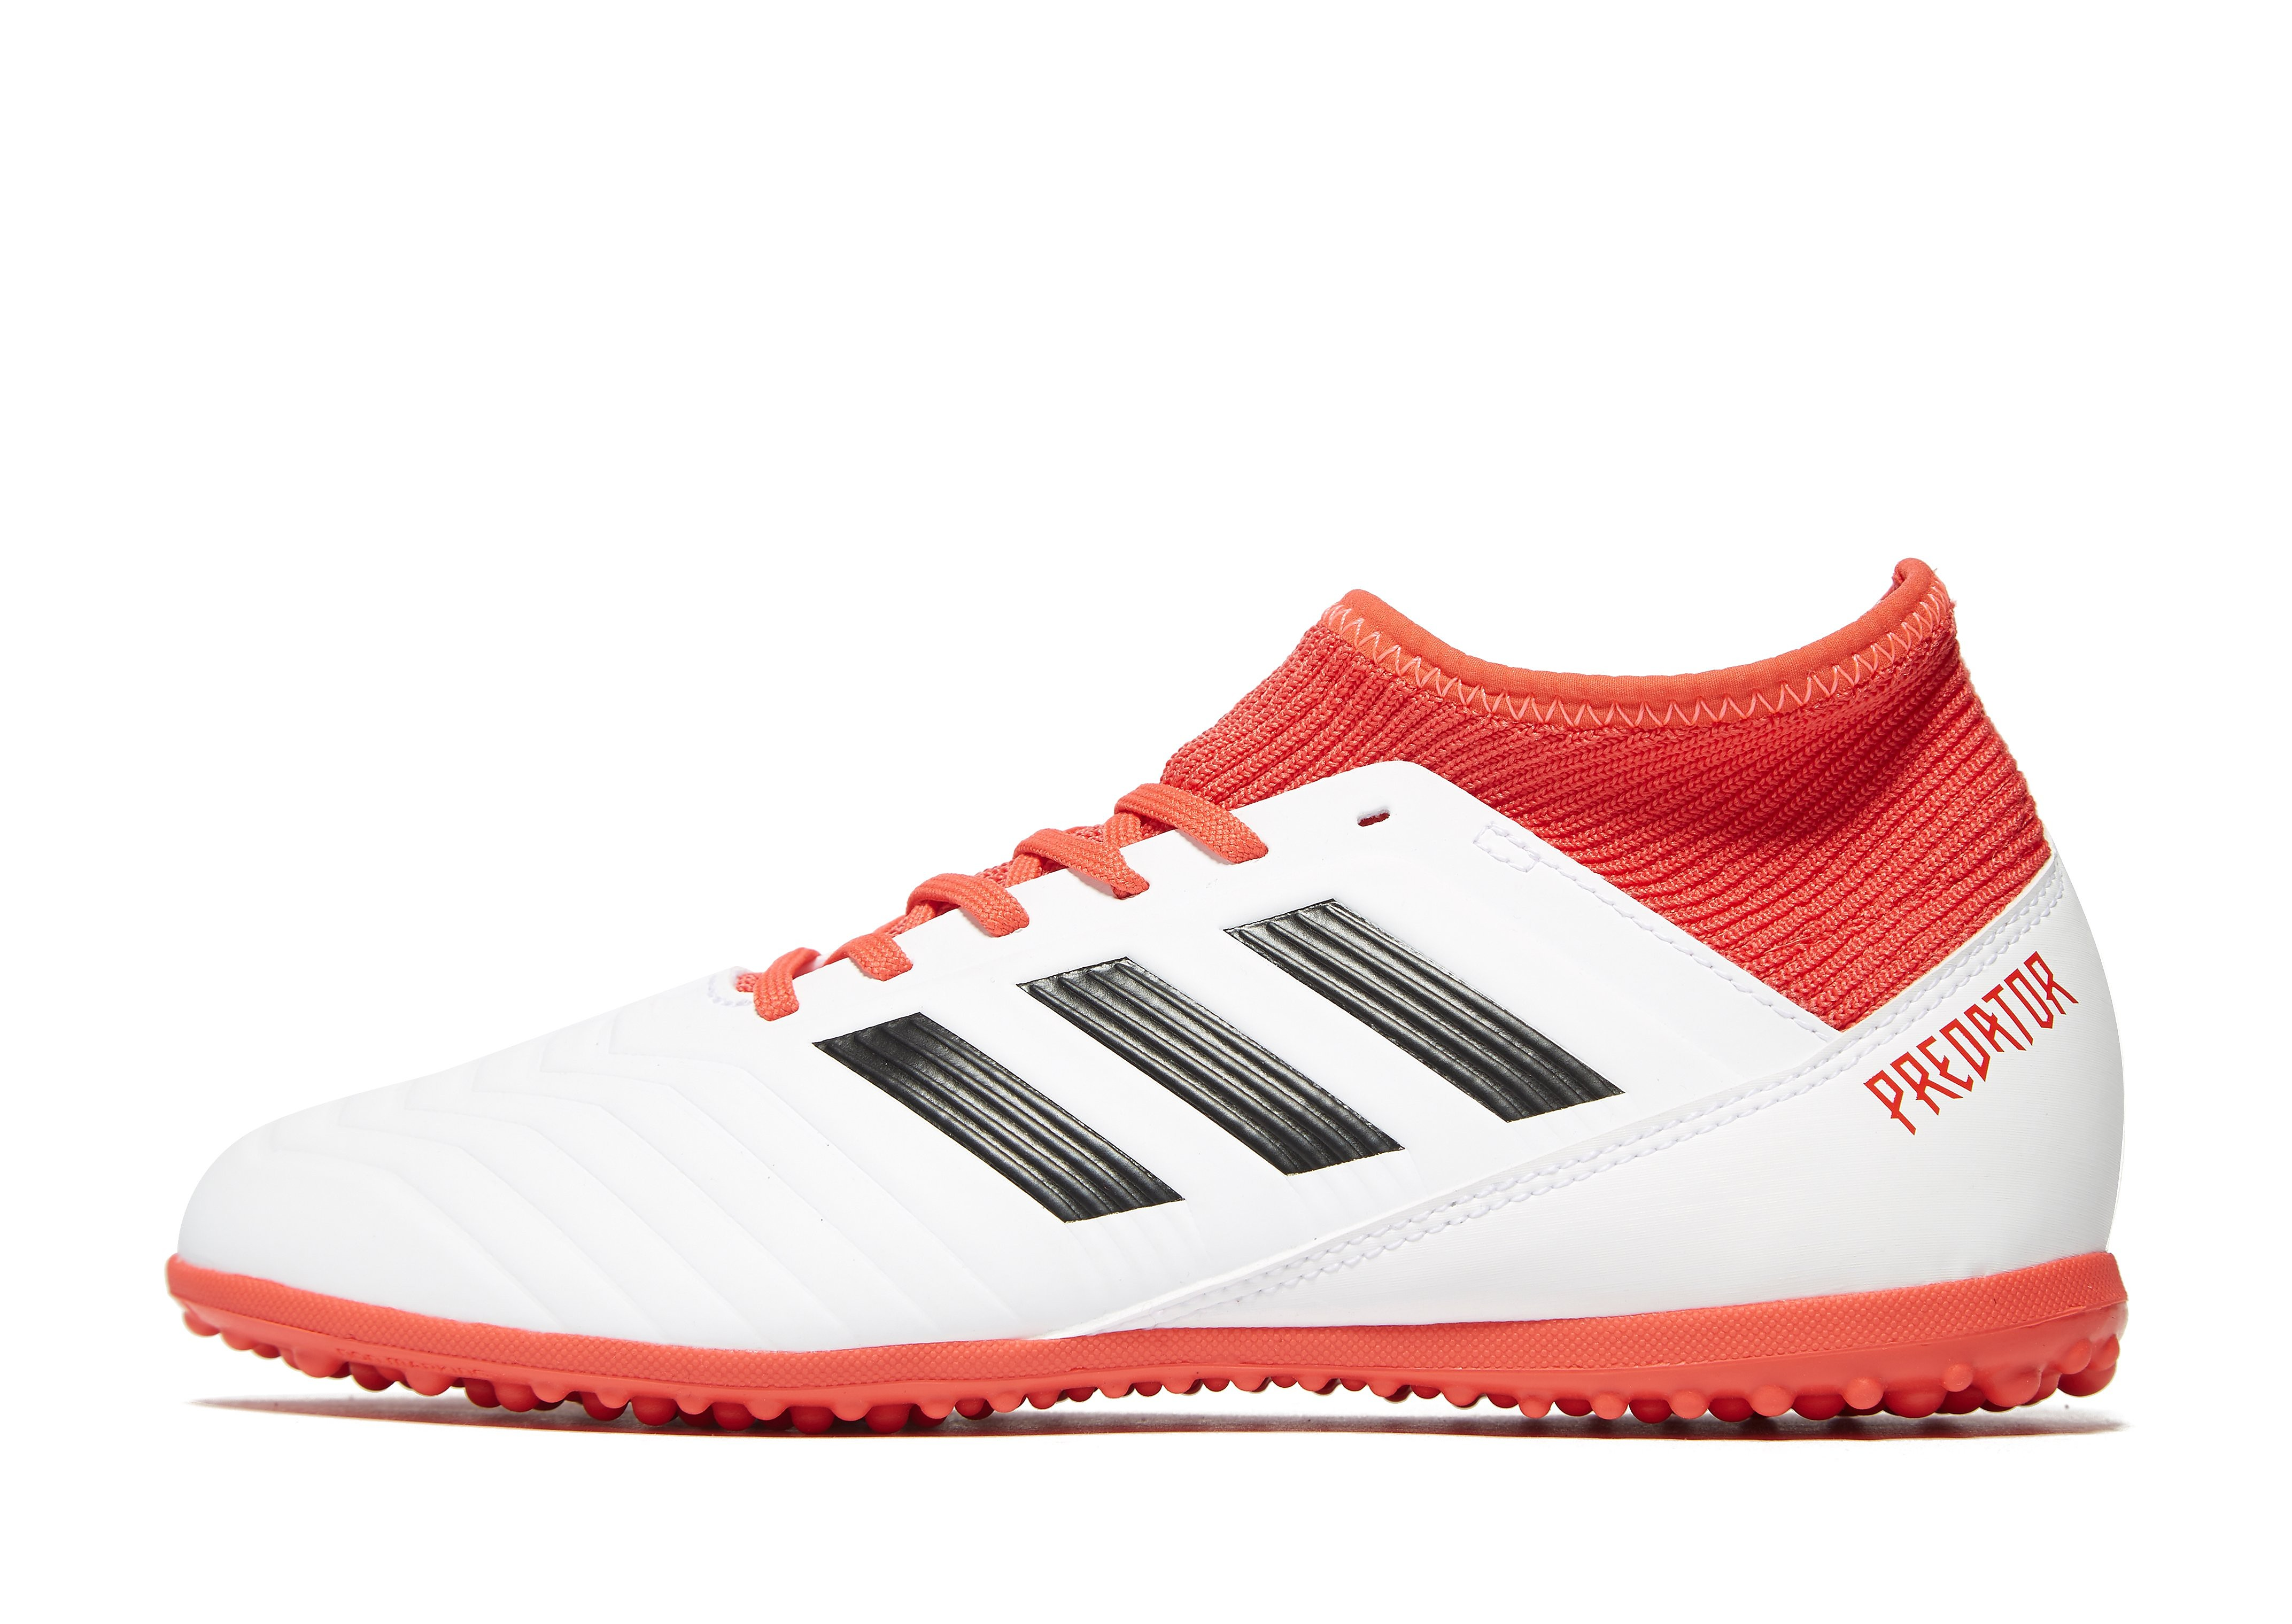 adidas Cold Blooded Predator 18.3 TF Junior